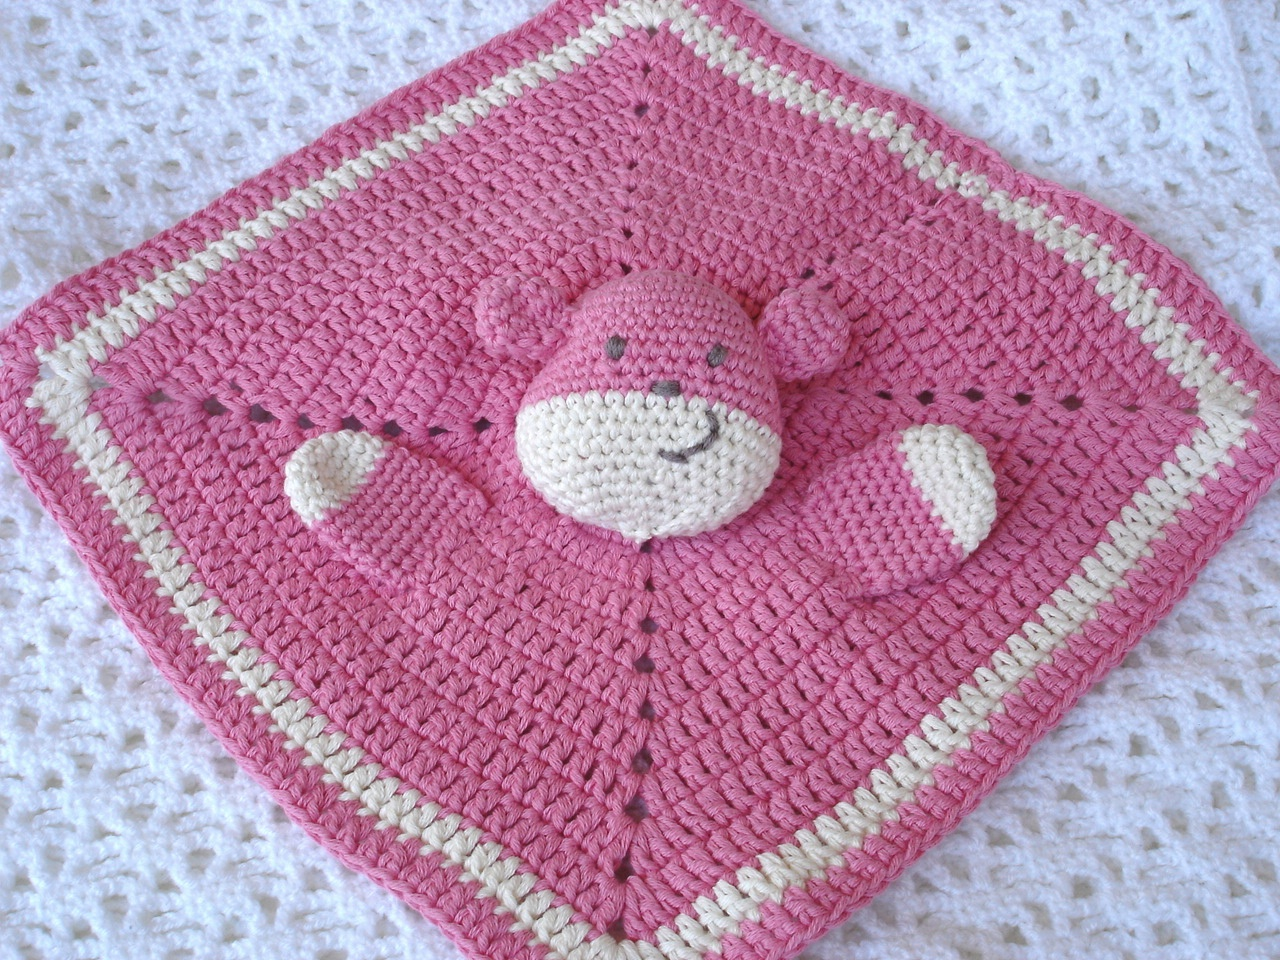 Free Knitting Pattern For Baby Comfort Blanket : Is it a toy: Teddy doudou free pattern